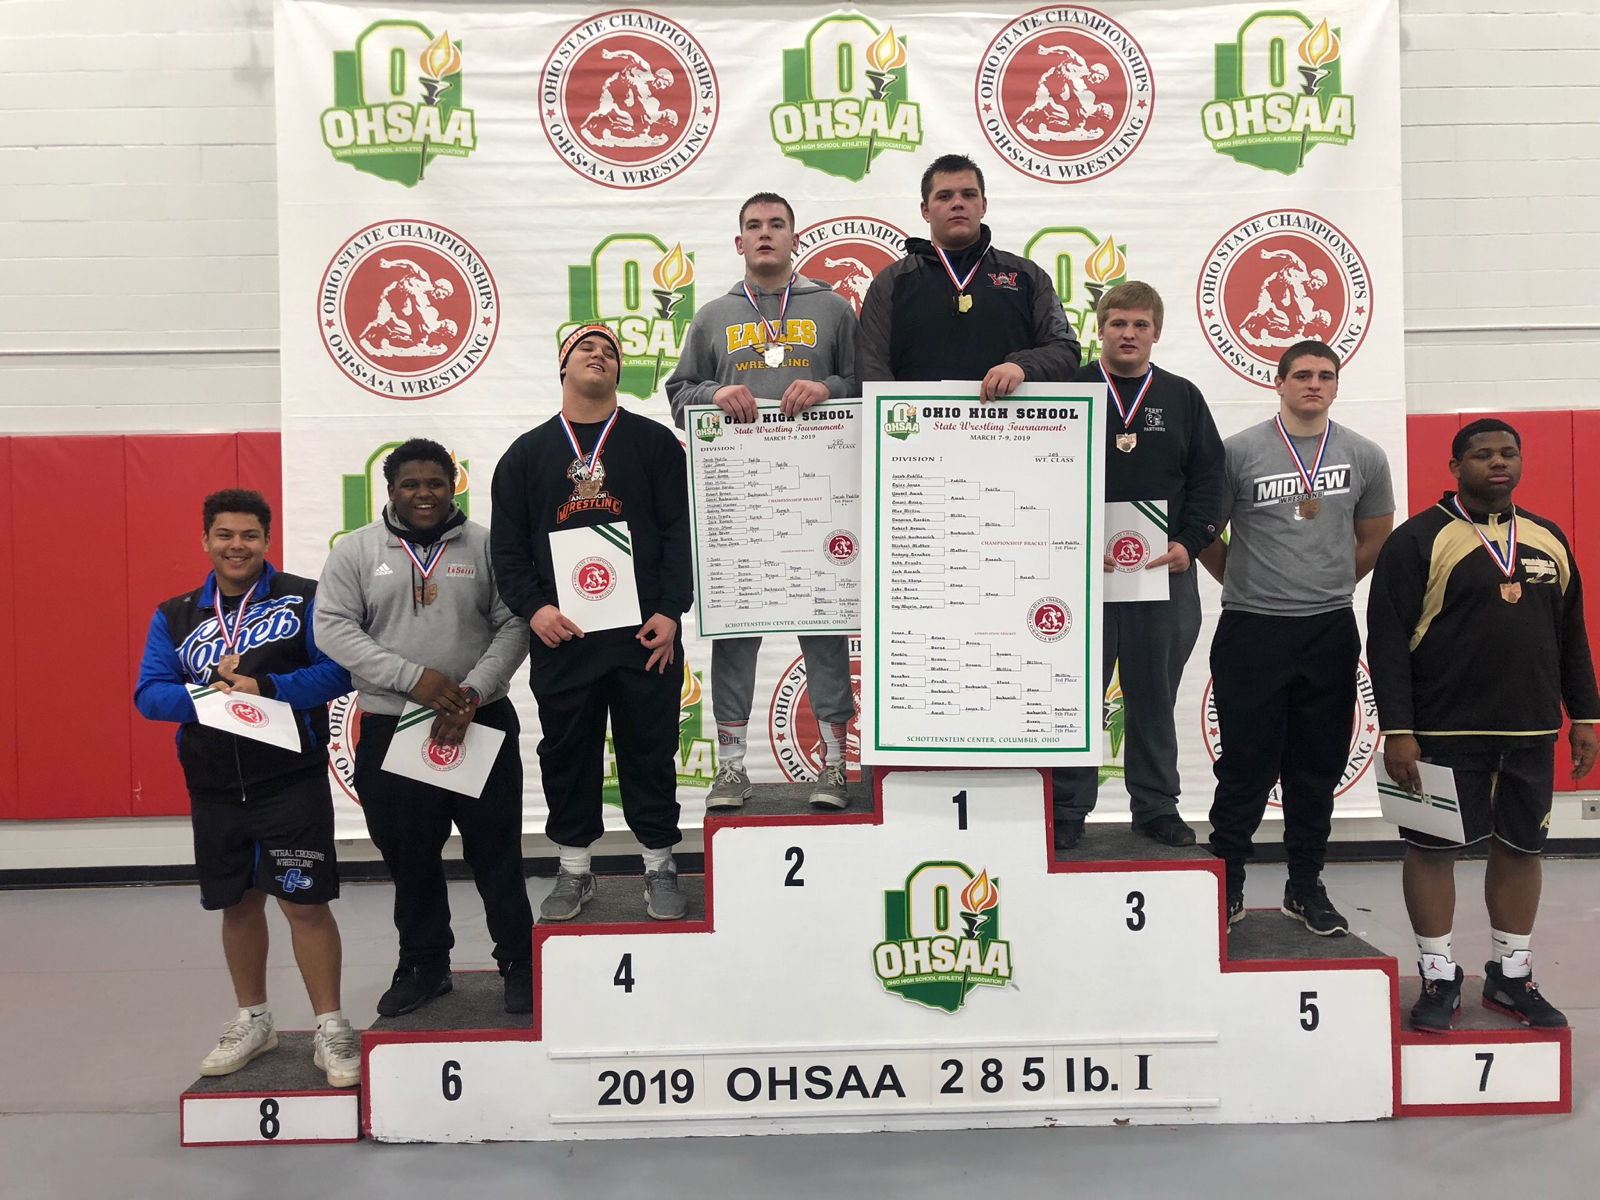 Wrestling: JACOB PADILLA IS A STATE CHAMPION